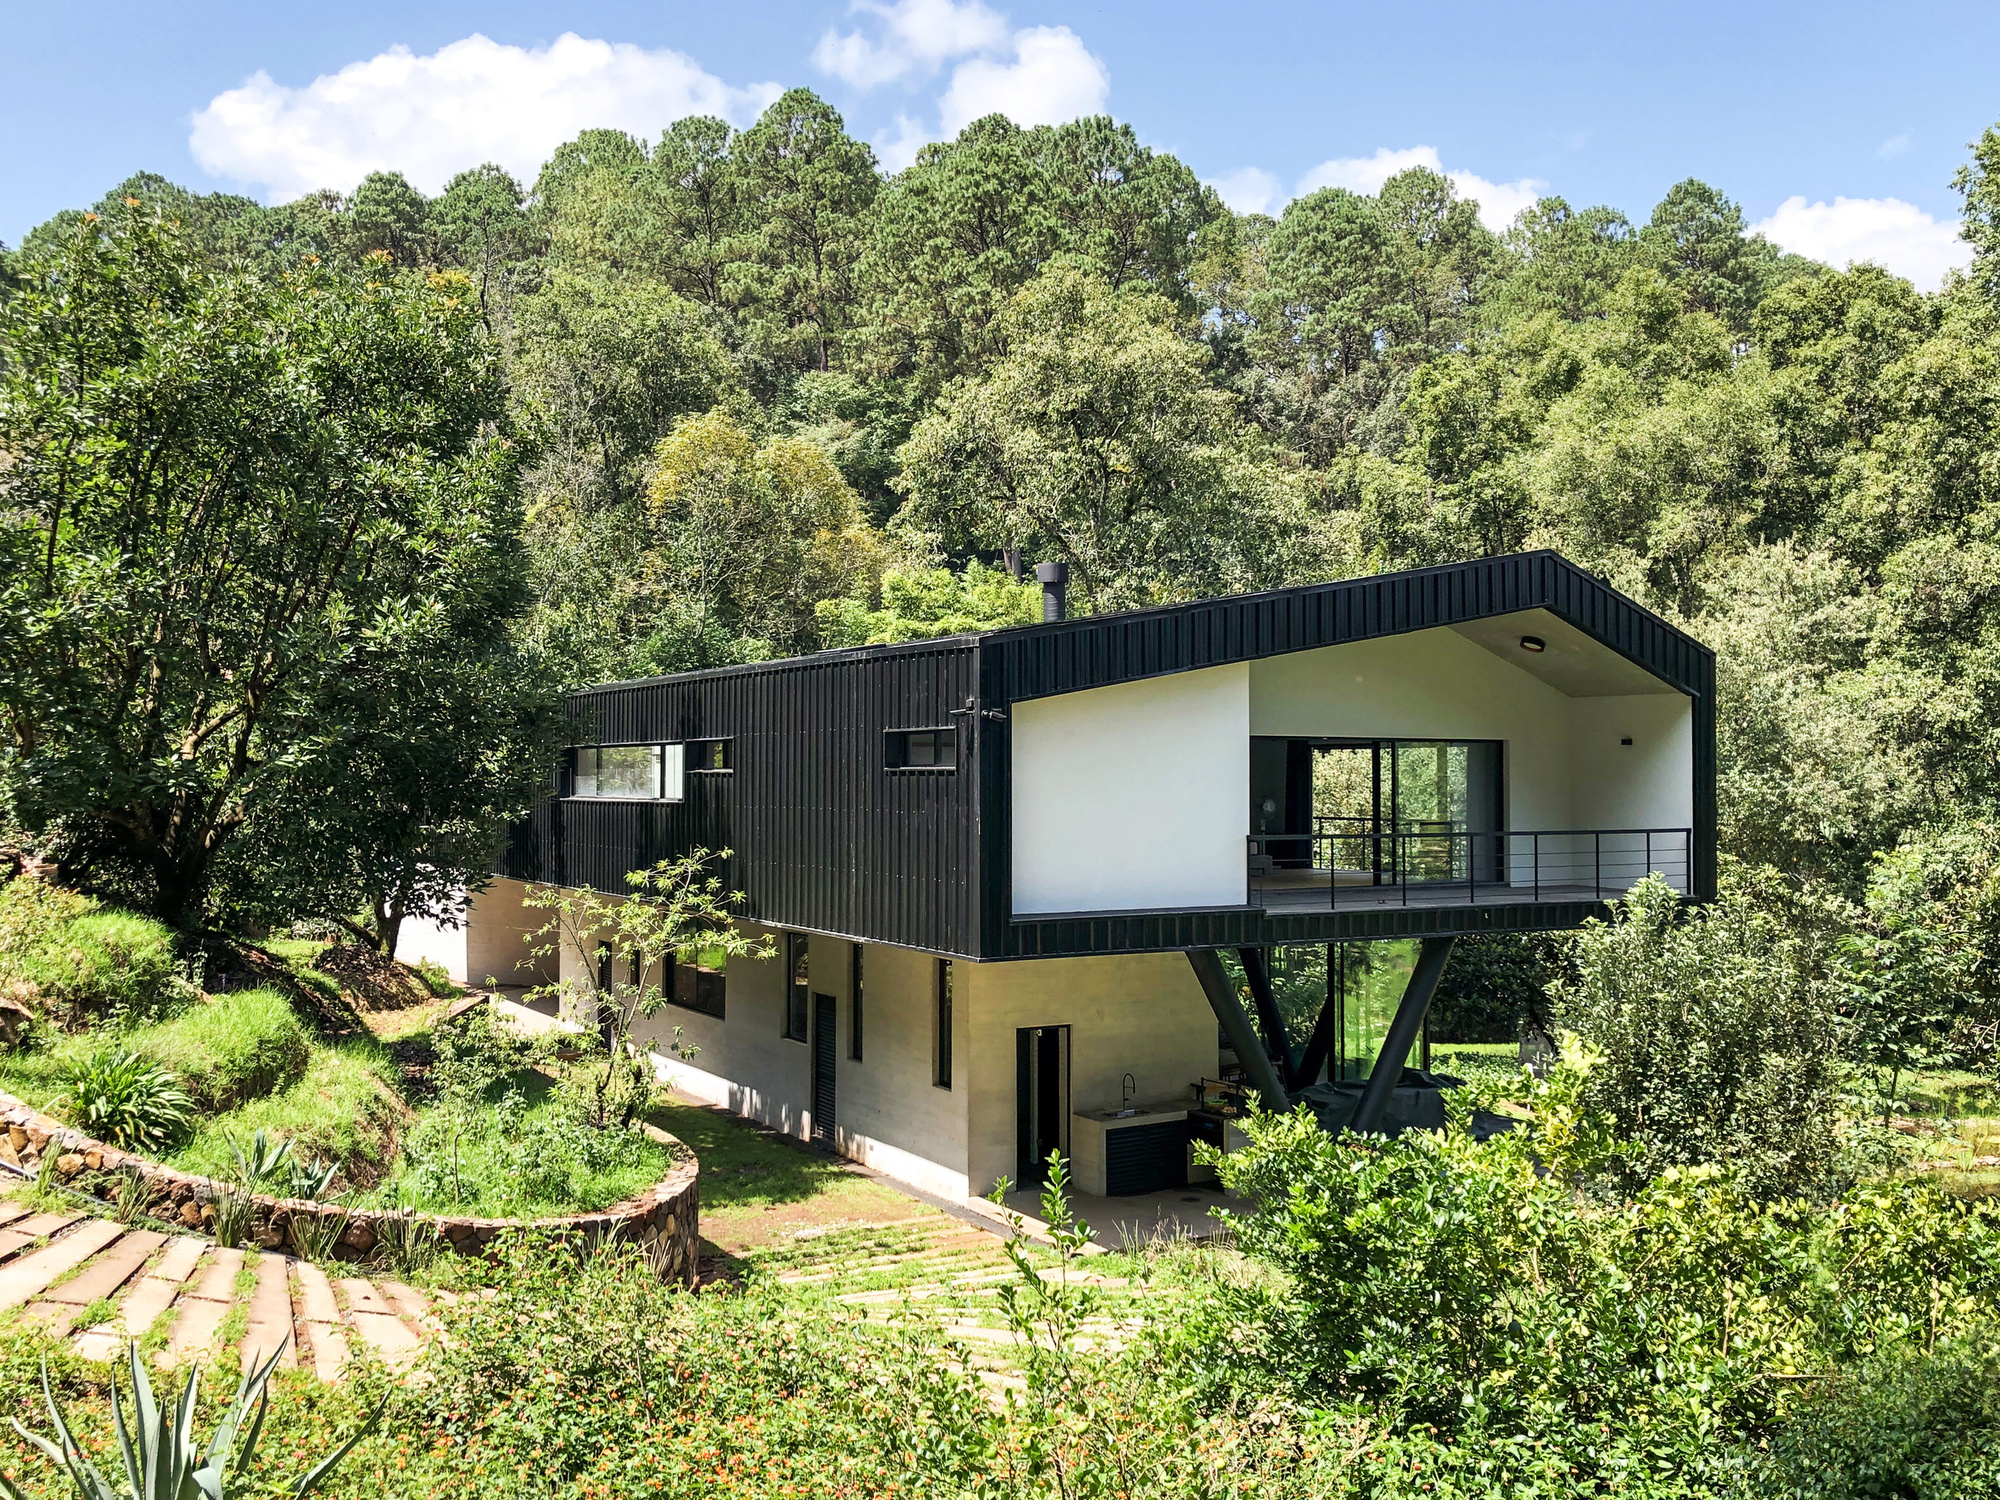 Contemporary home surrounded by lush green forest area in Valle de Bravo, 160 km away from Mexico City